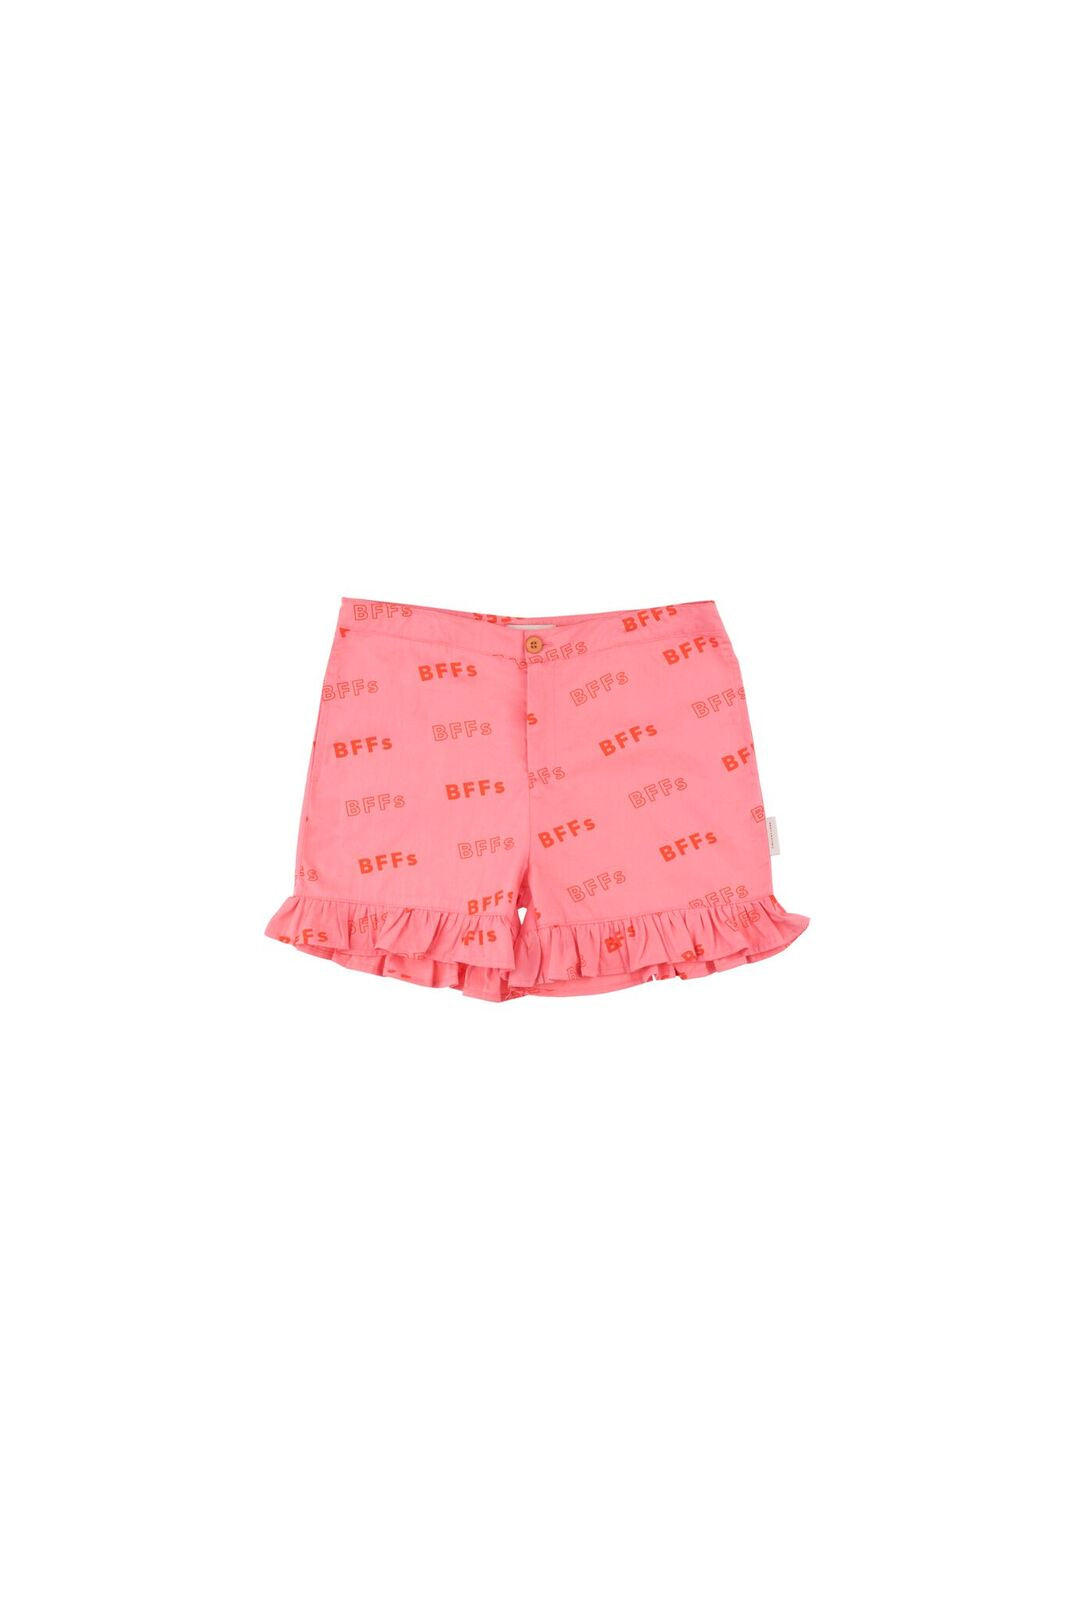 'BFFs' Frills Shorts -  rose/red